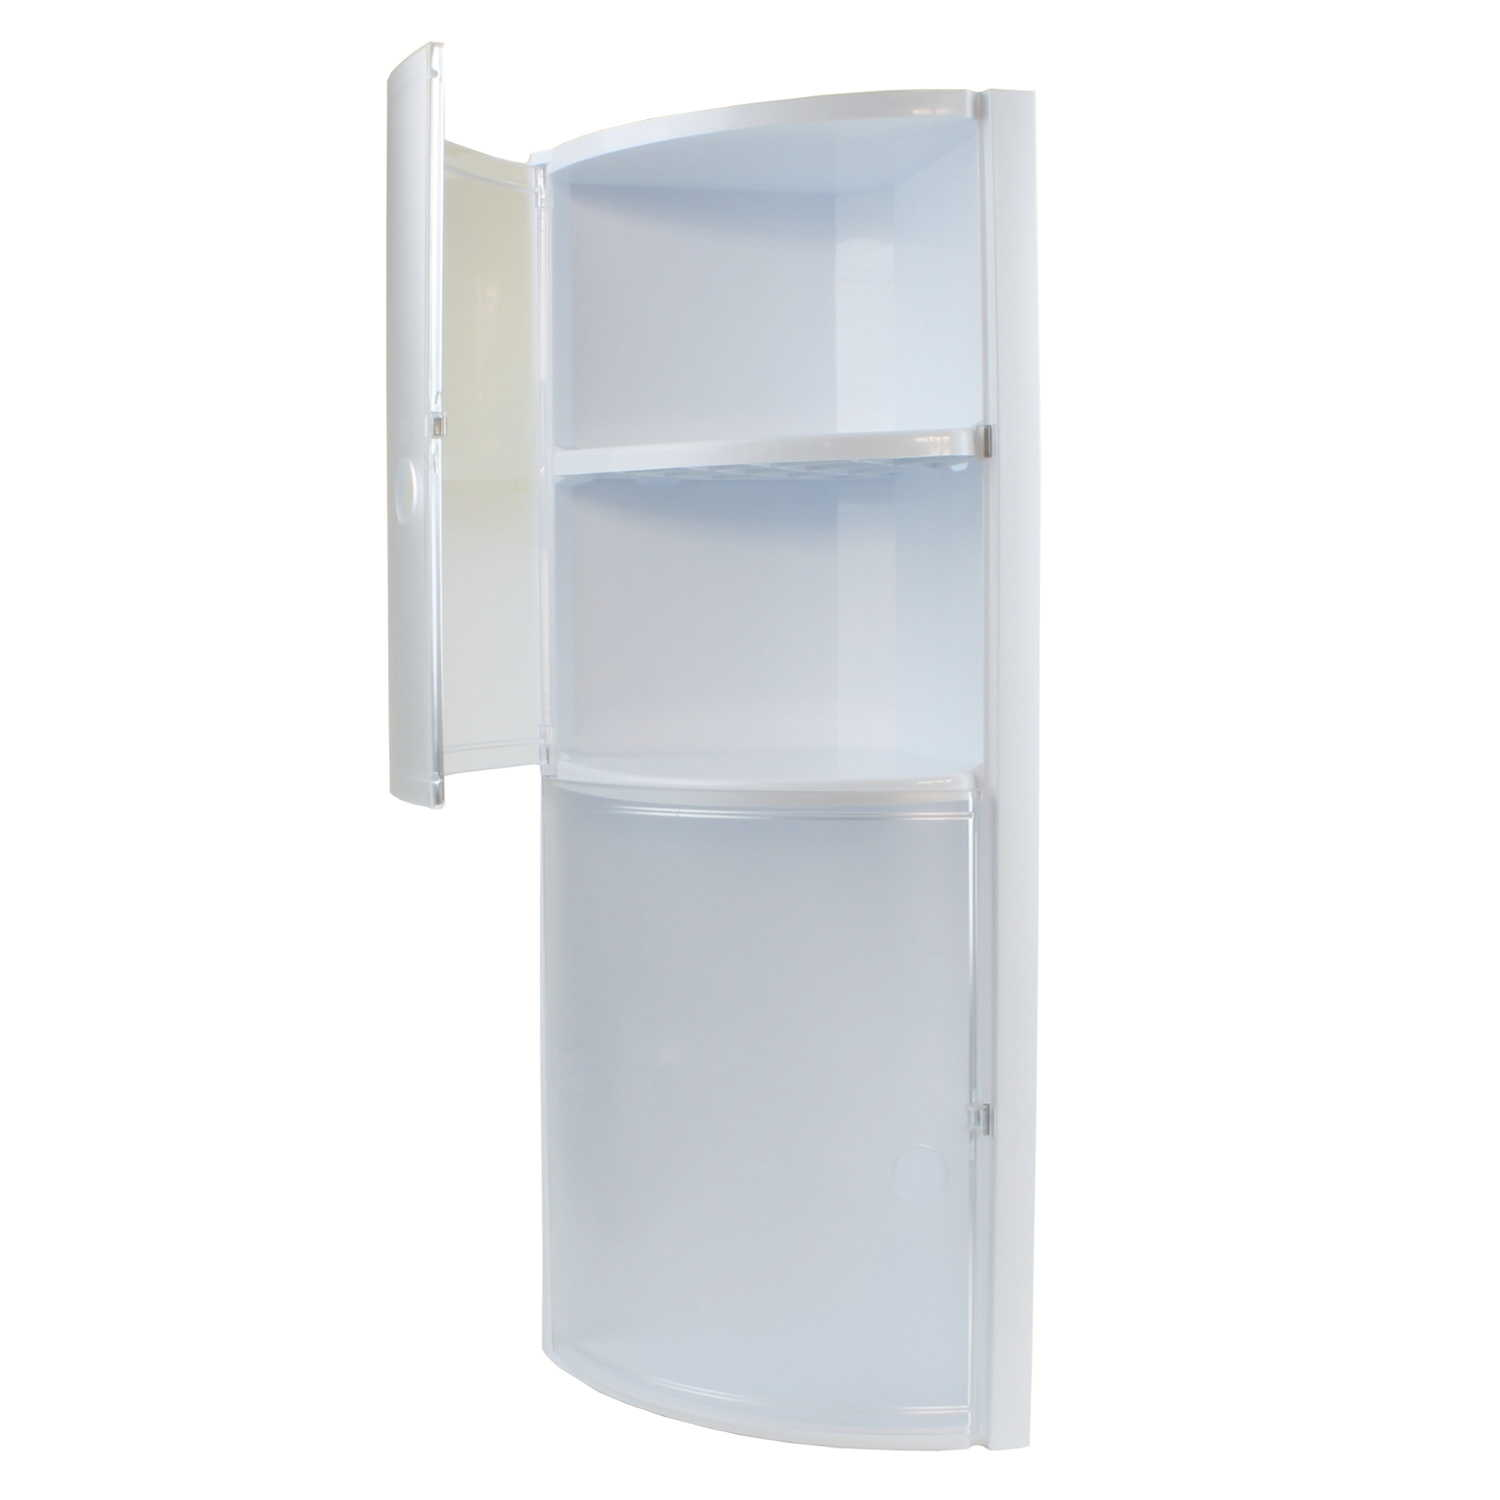 armoire d 39 angle tag re de salle bain plastique blanc sans per age ebay. Black Bedroom Furniture Sets. Home Design Ideas